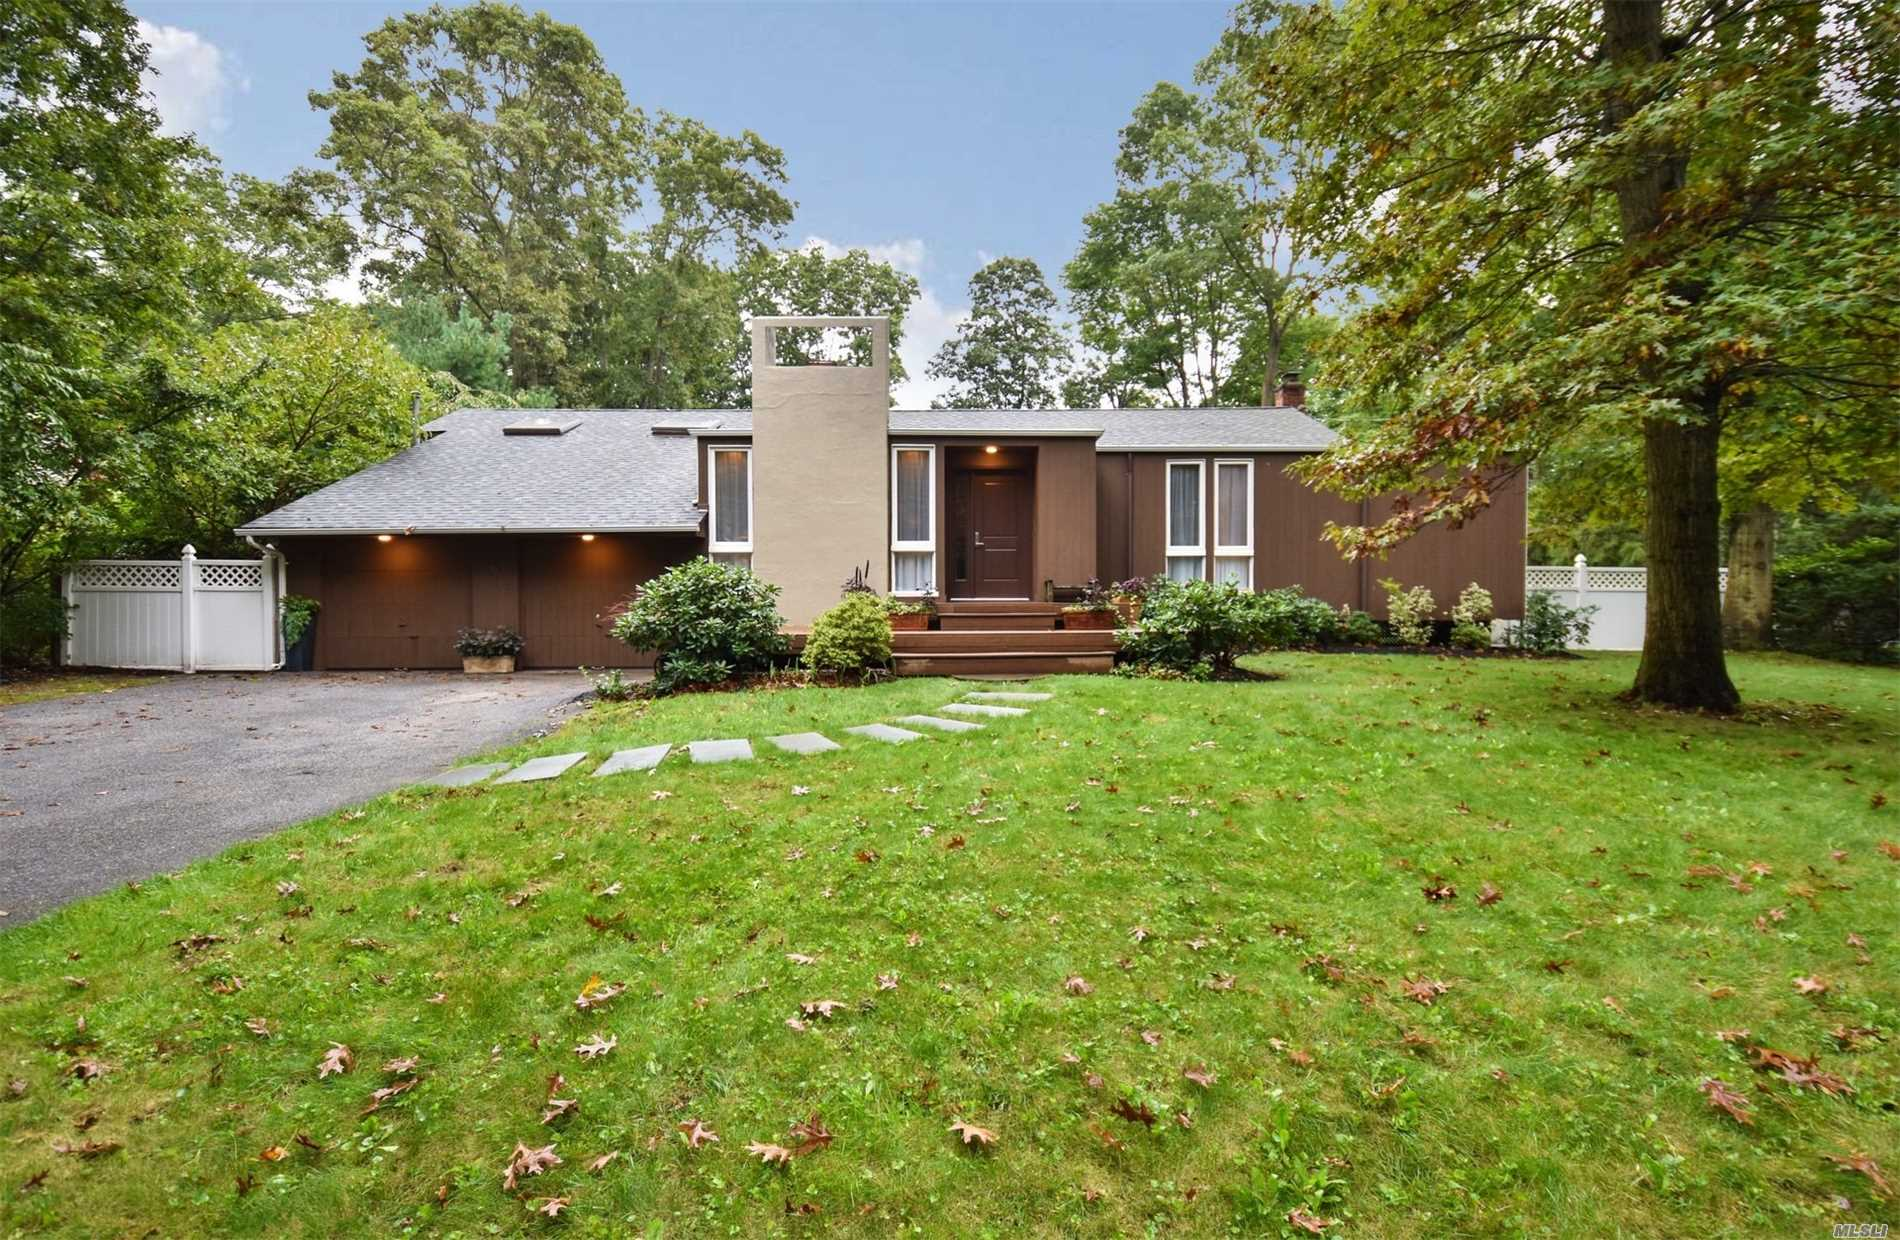 Unique Ranch Redesigned By Renowned Architect, Sun Filled Open Floor Plan With High Ceilings In Principal Rooms, Hardwood Floors, Beautiful Eik With Cherry-Wood Cabinetry And Breakfast Nook, Granite Counter Tops And Stainless Steel Appliances. Updated Baths, New Cac, 6 New Skylights, Gas Heat/Cooking, Gorgeous Flat Half Acre, Low Taxes And Just Minutes To All.